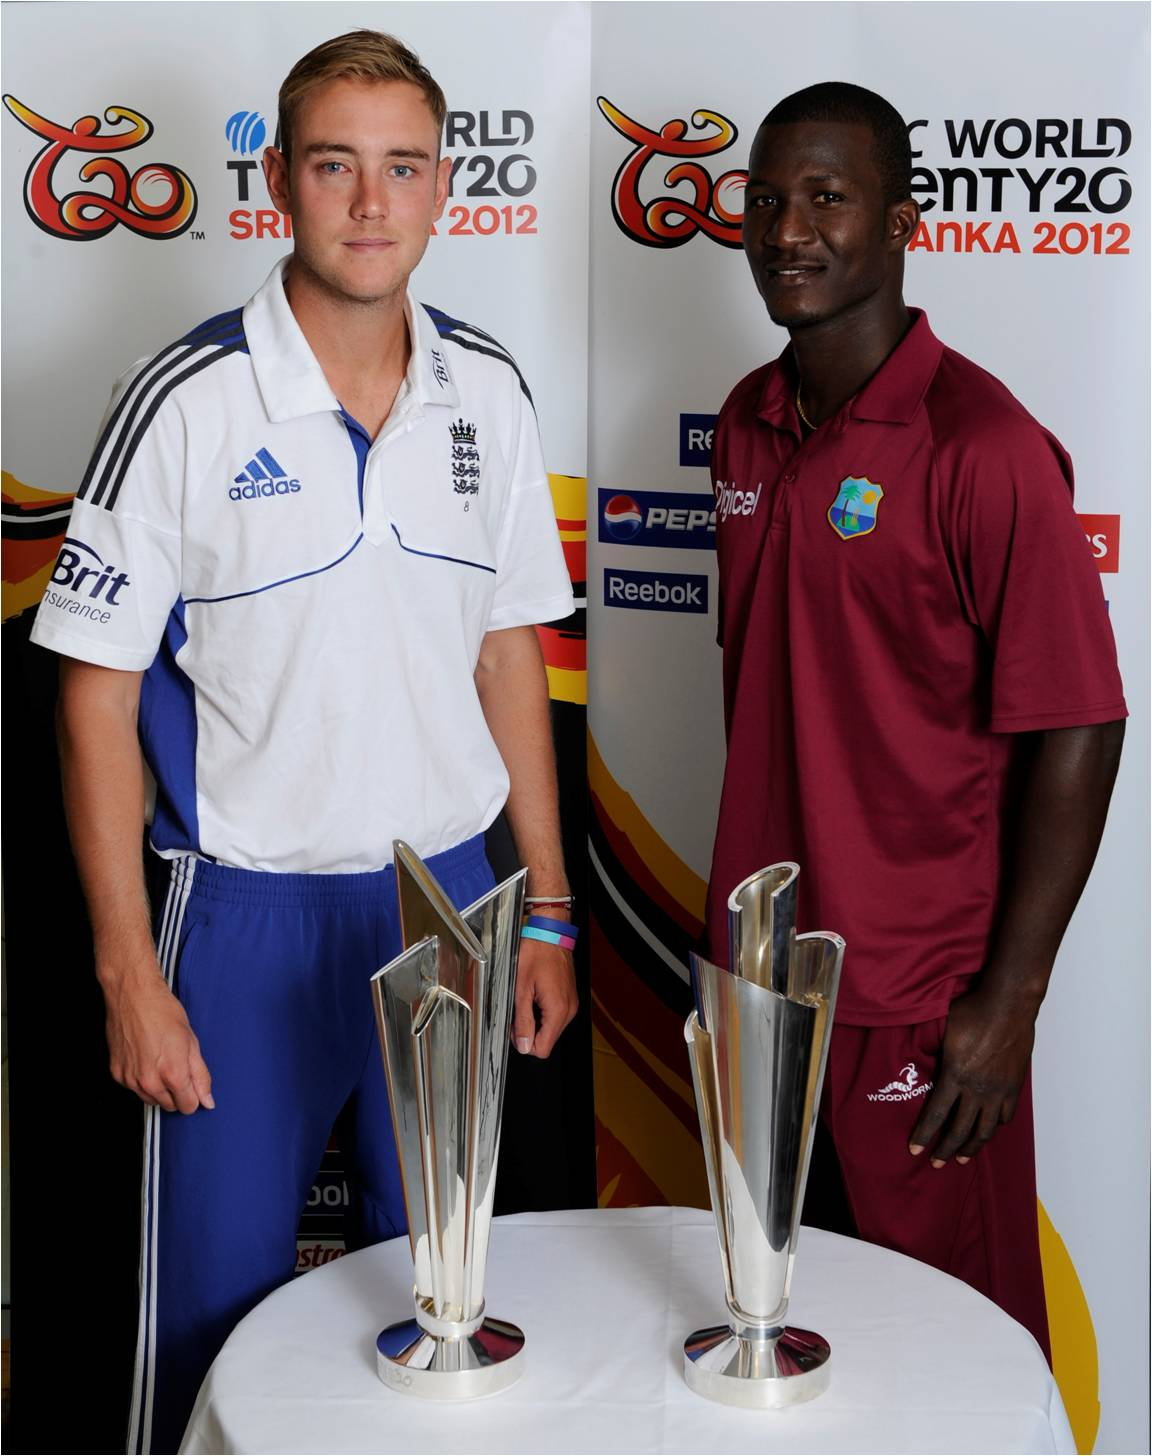 ICC World T20 trophies continue global tour